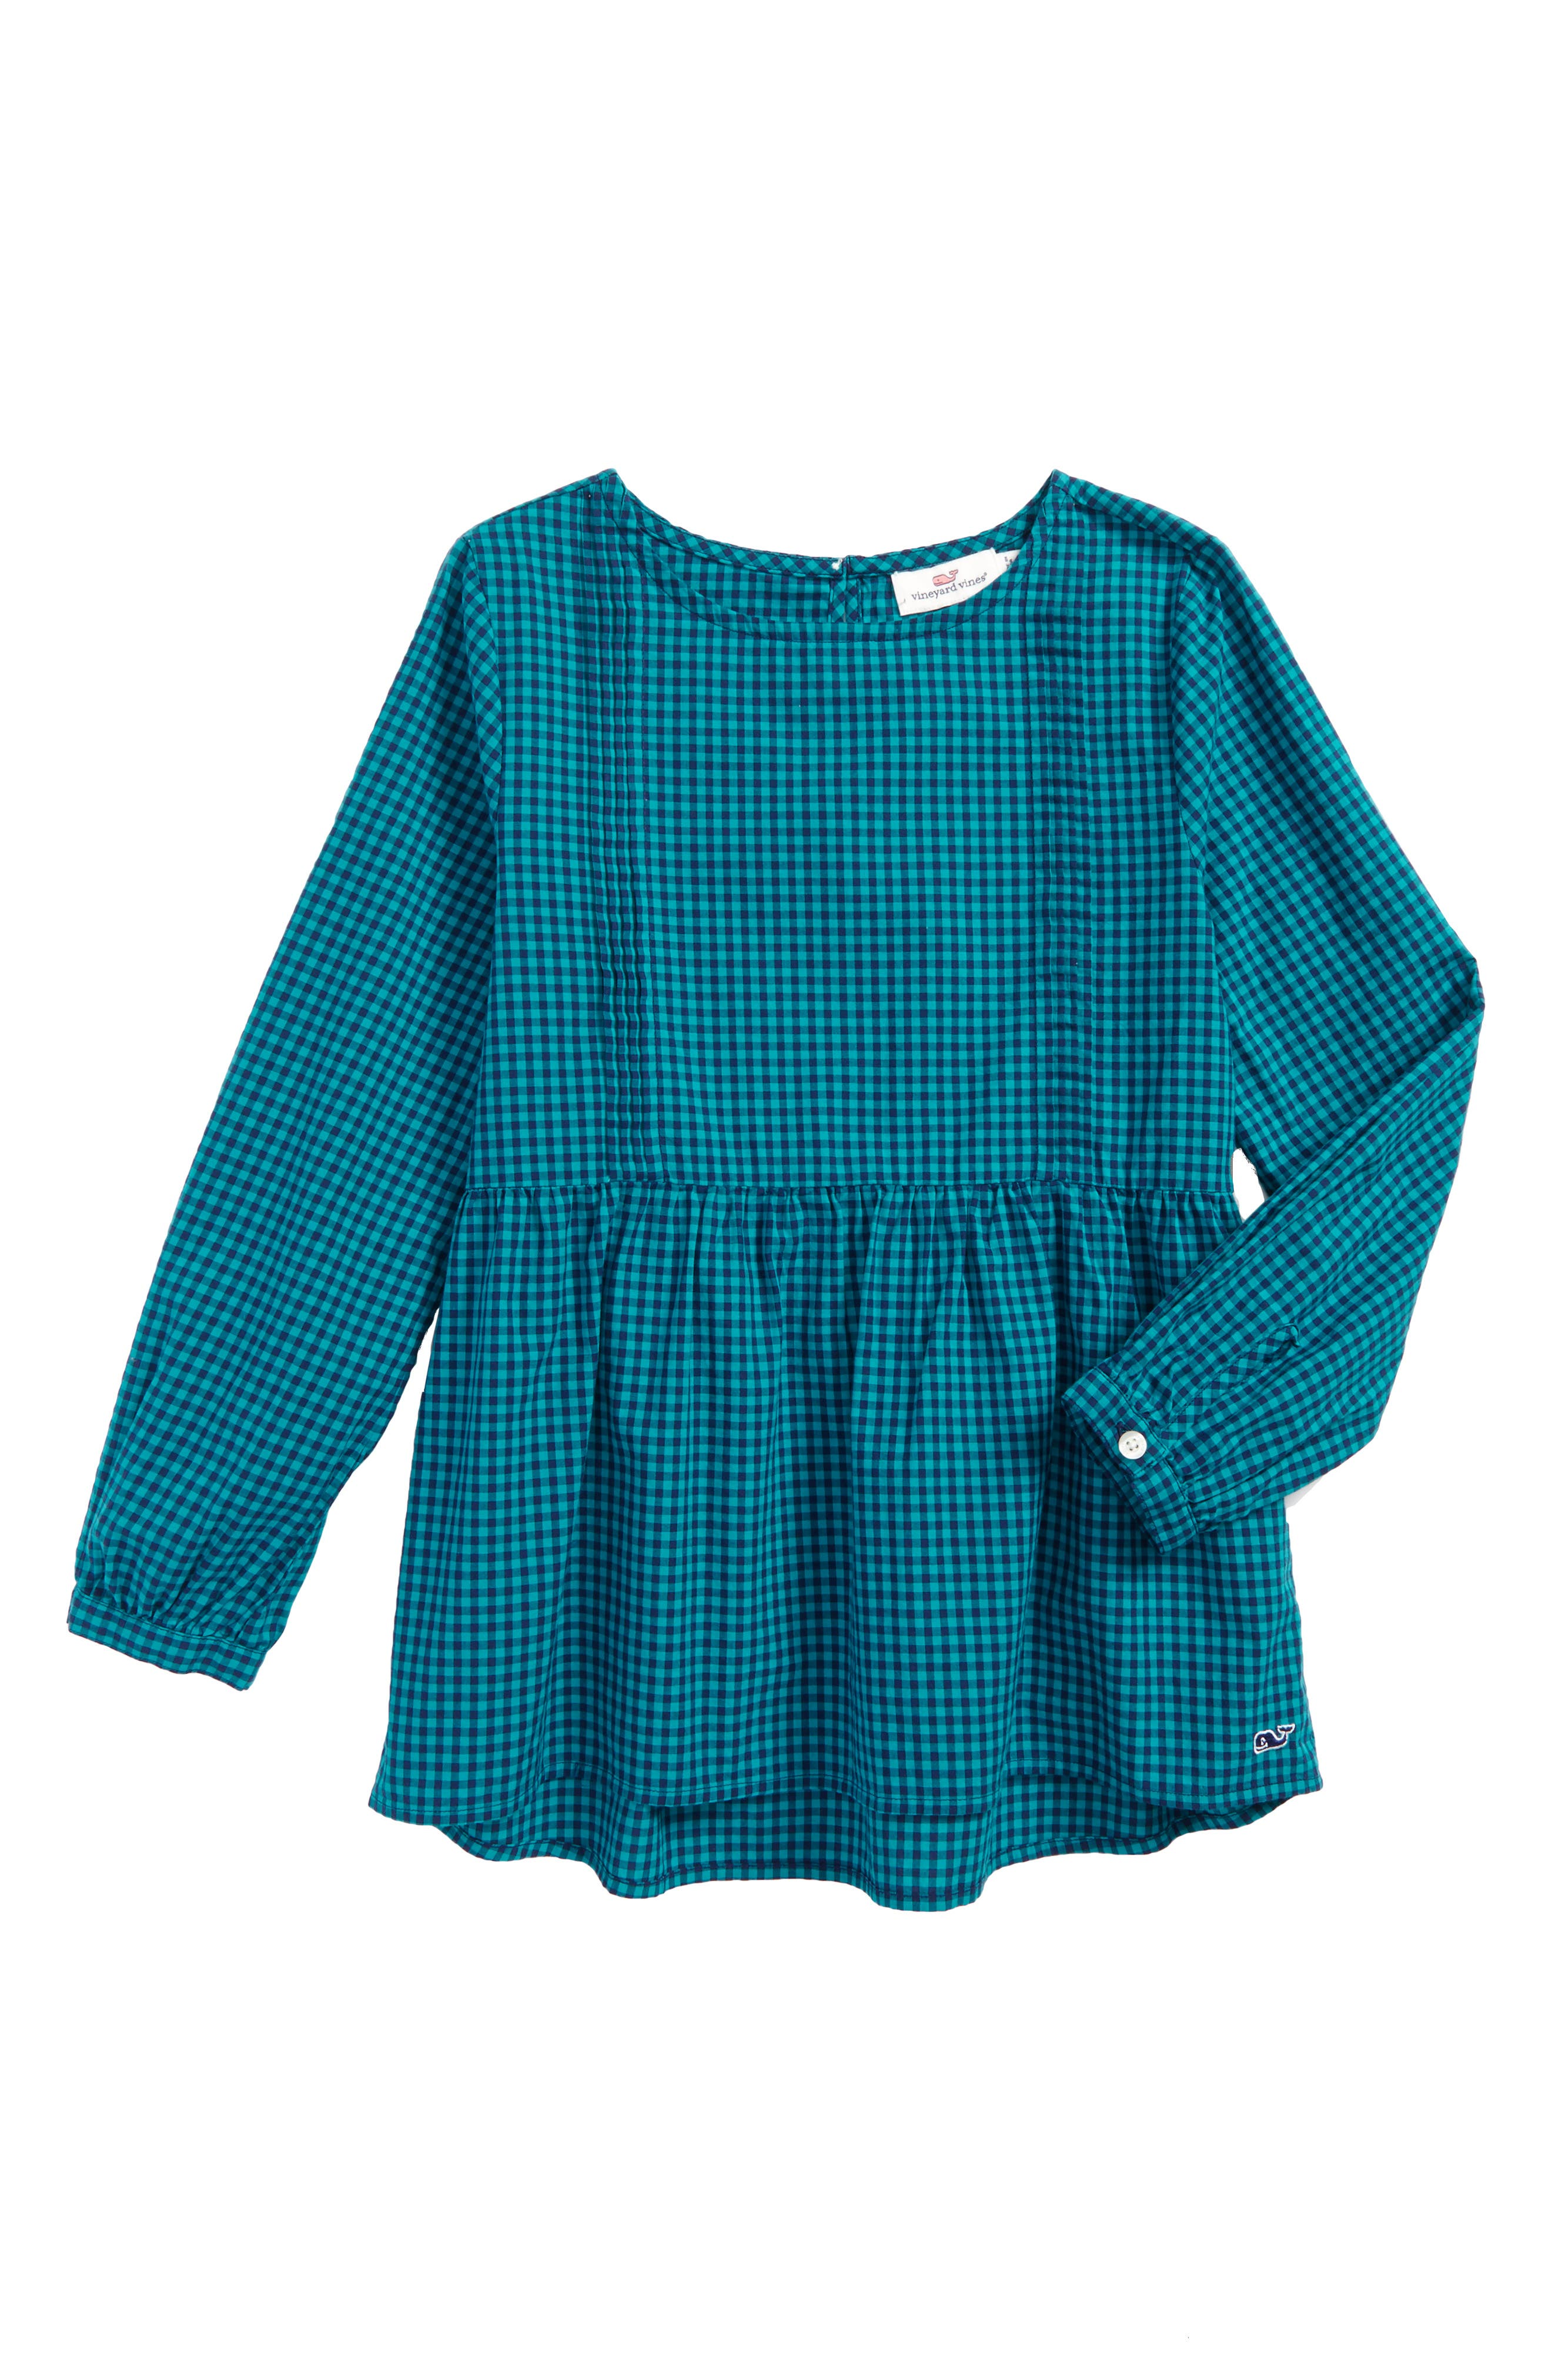 Main Image - vineyard vines Gingham Woven Top (Little Girls & Big Girls)